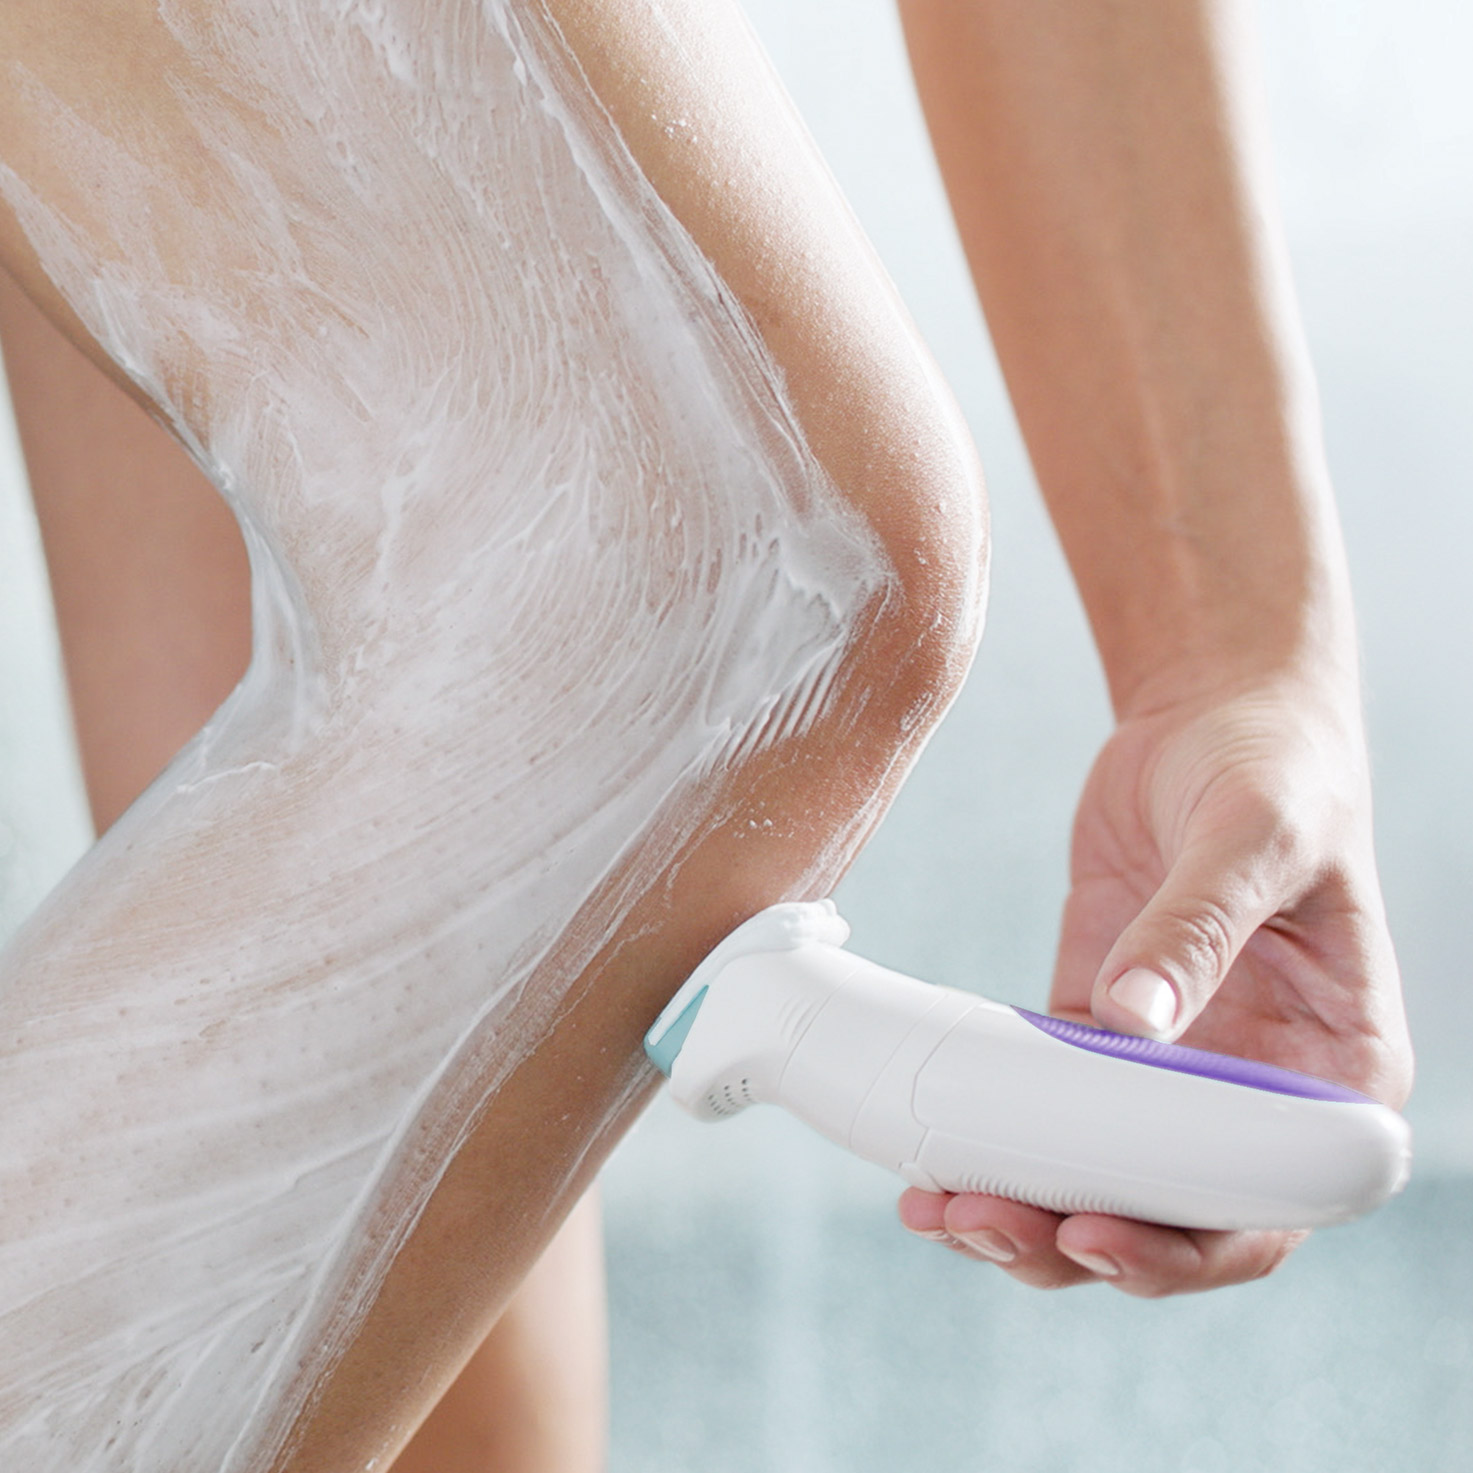 Silk-épil 5 5/880 SensoSmart™ epilator in use